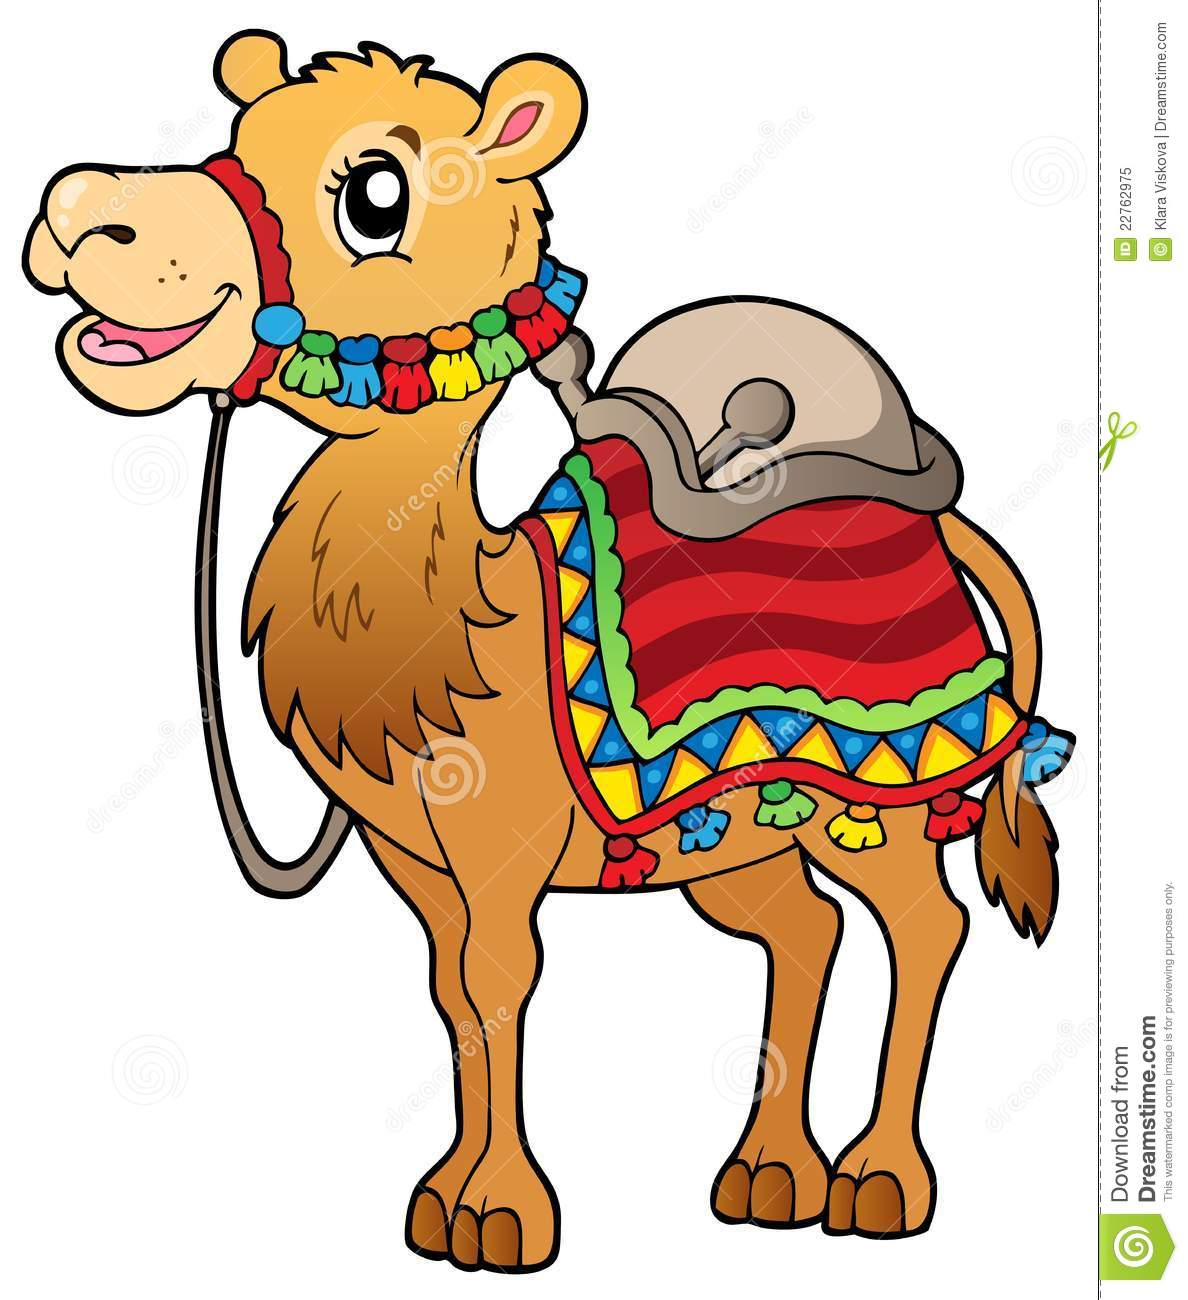 cartoon camel with saddlery royalty free stock photo white elephant christmas clipart white elephant sale clipart